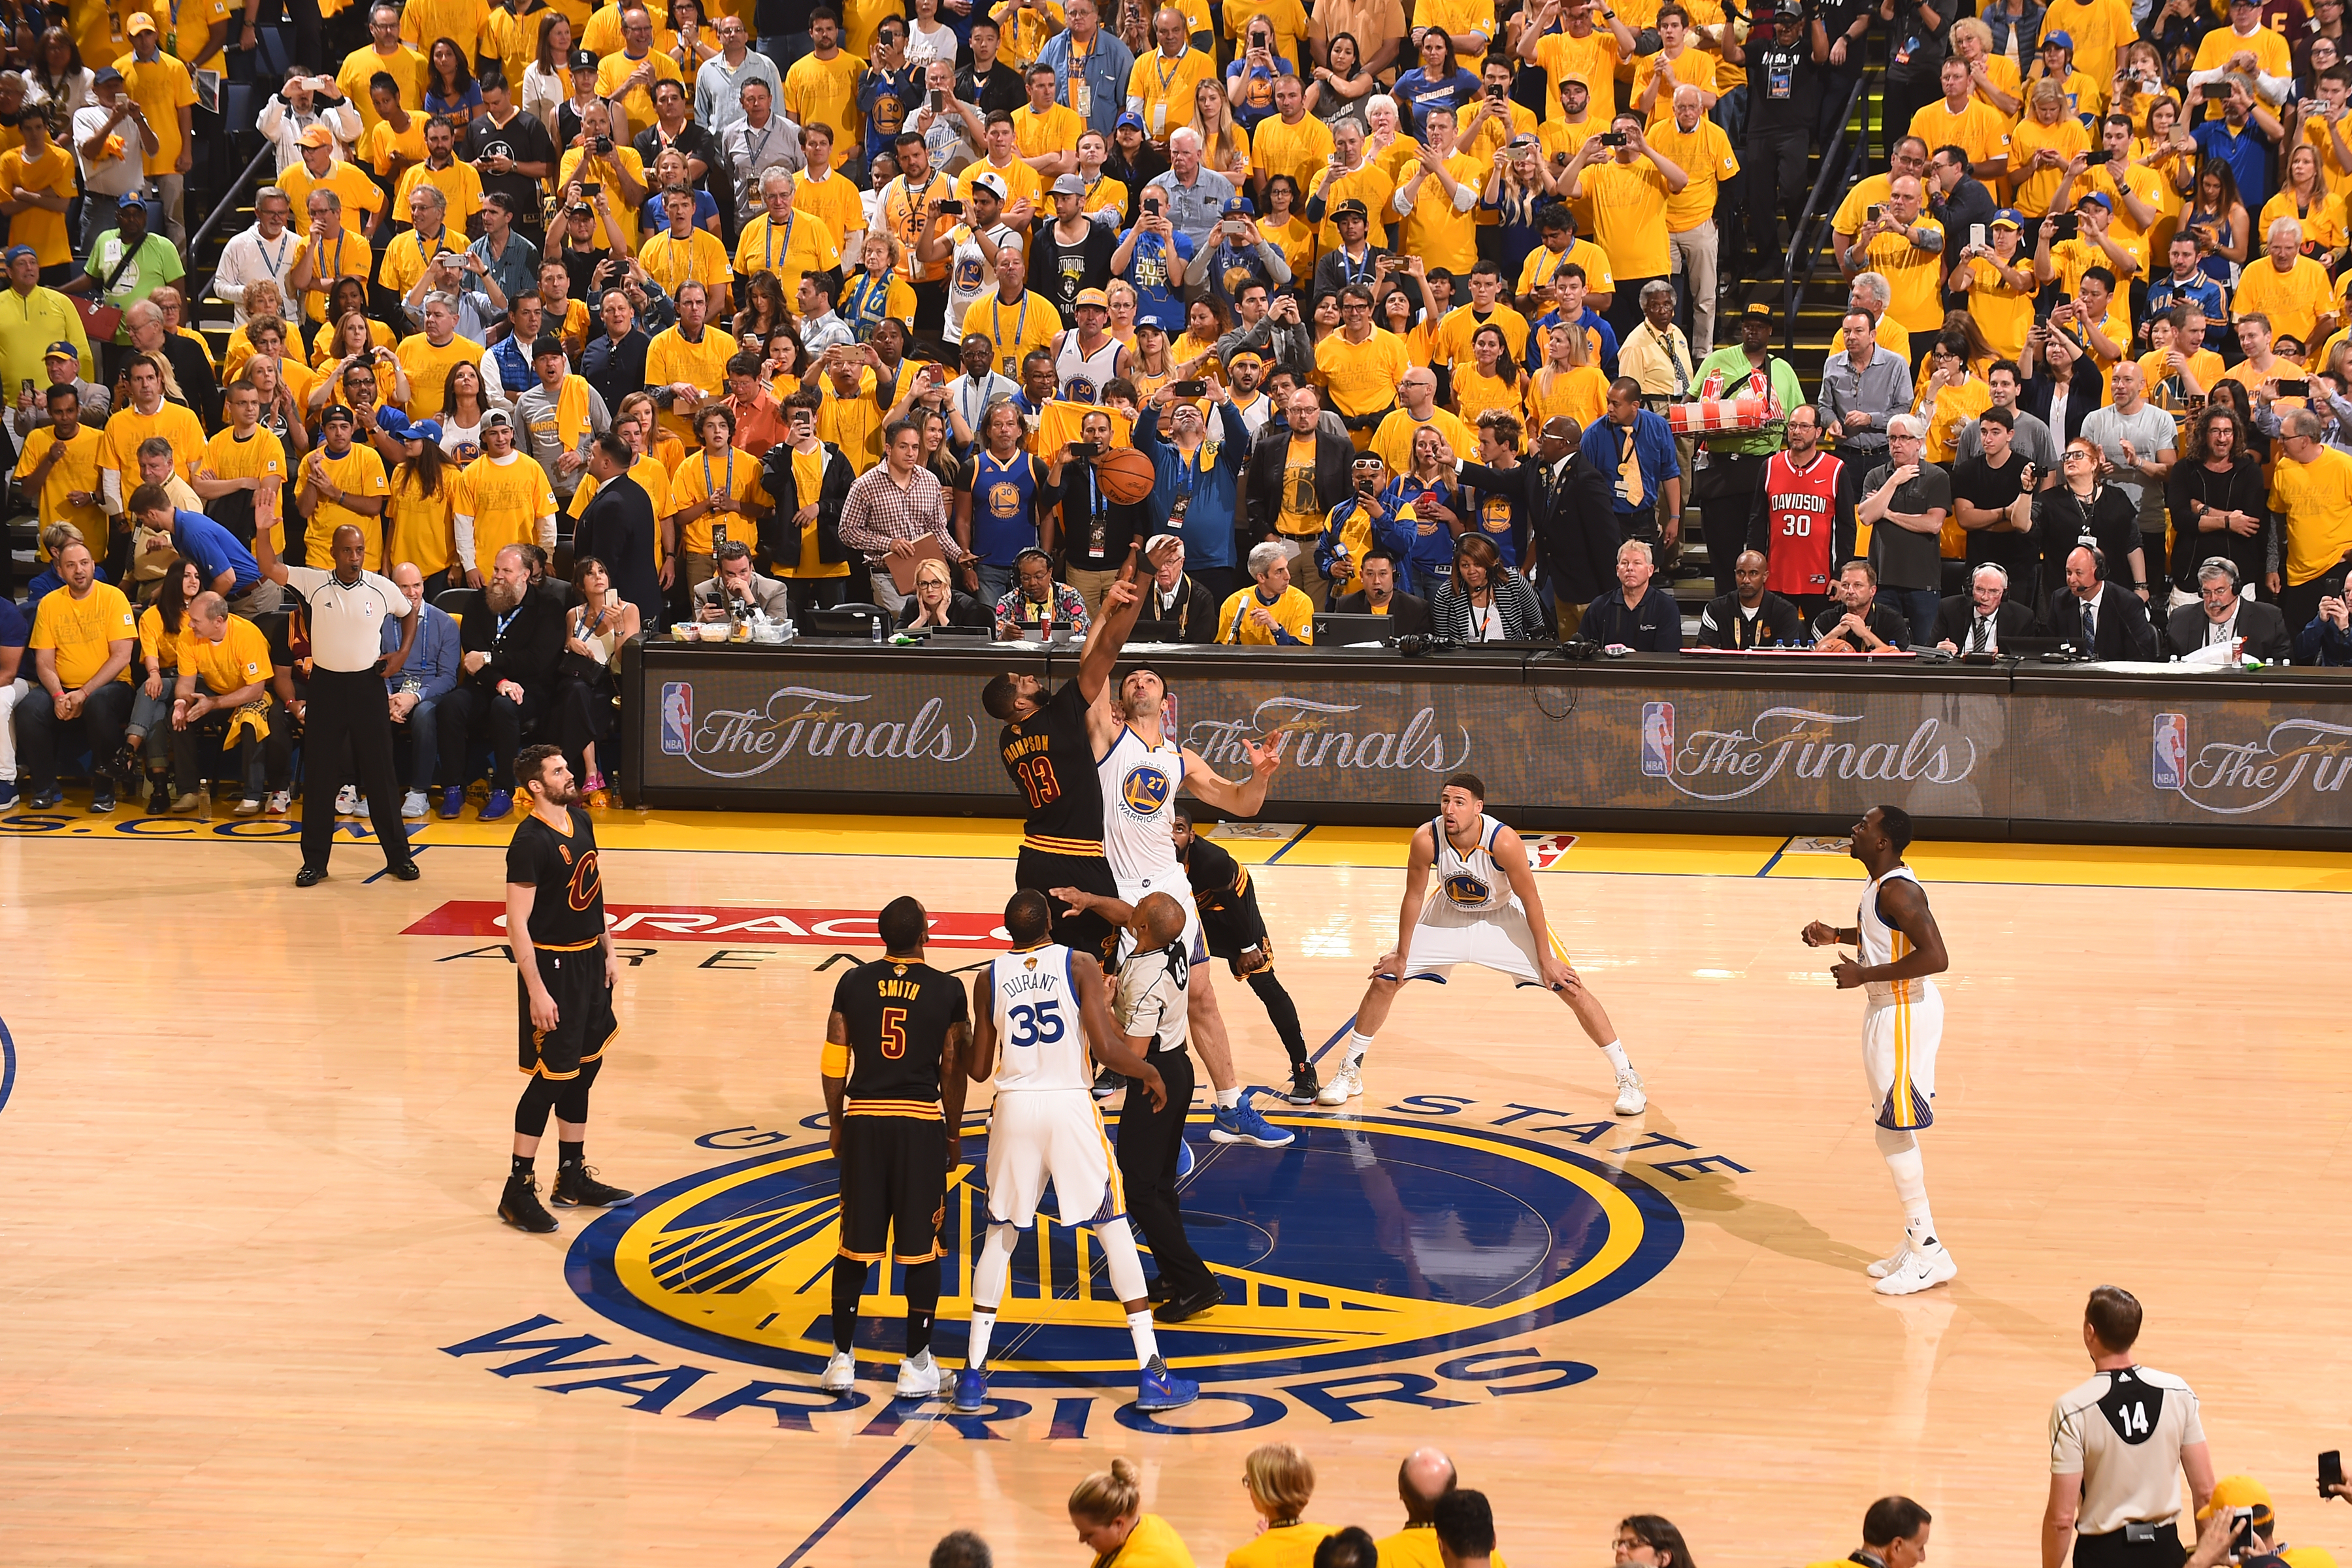 2018 Nba Finals Game 1 How To Live Stream The Game For Free Money